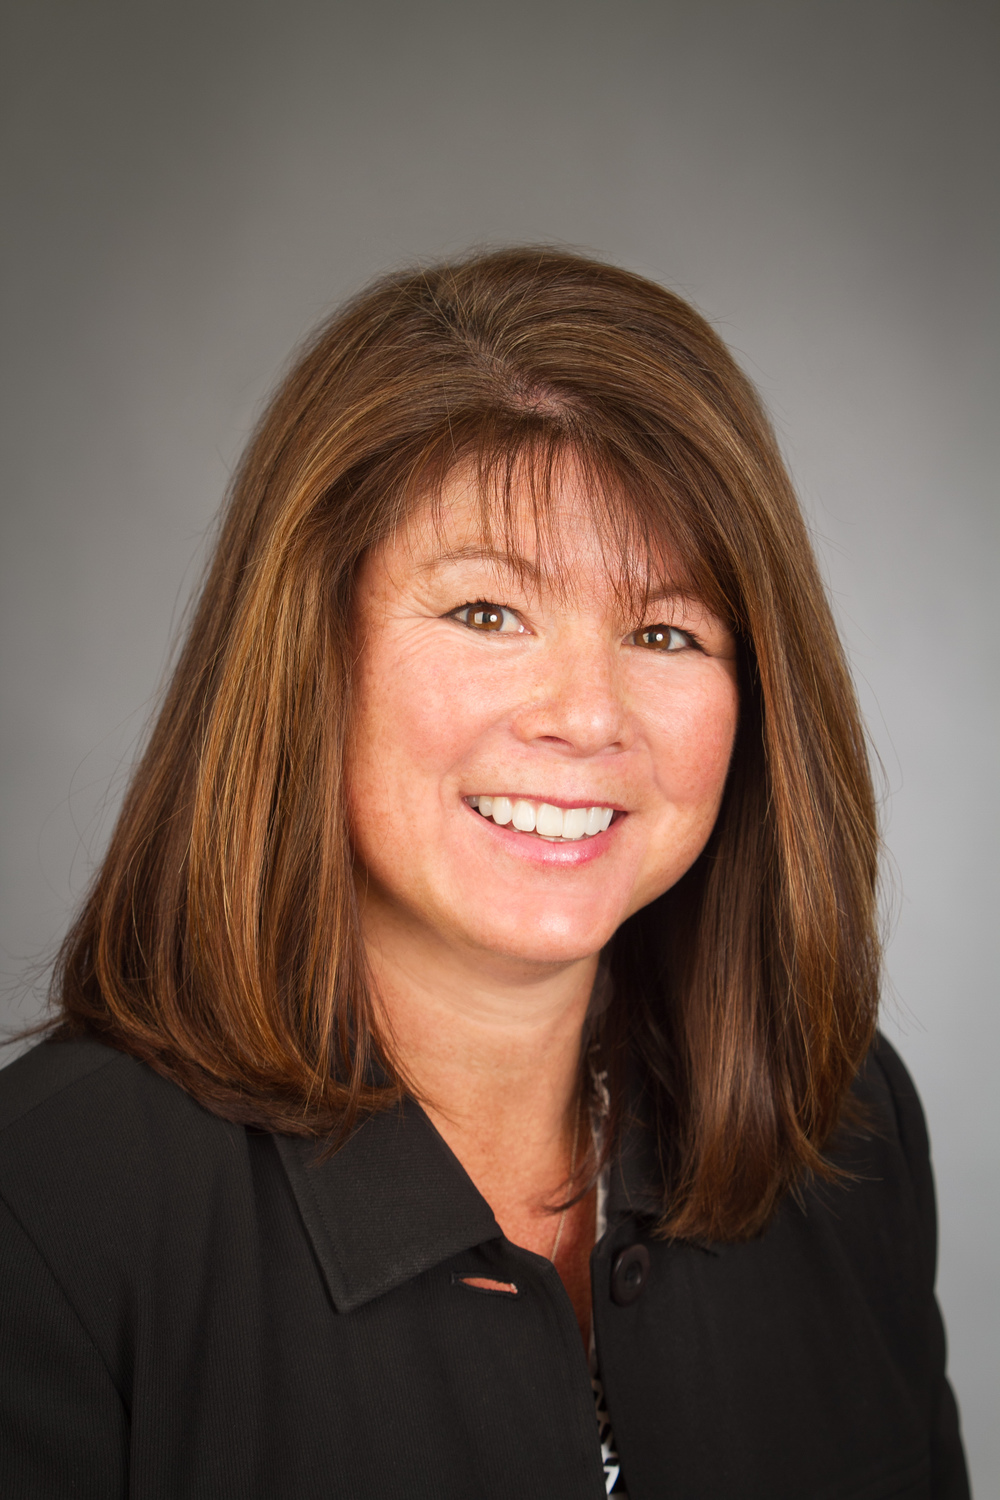 Maria L. Timon   Chief Financial Officer   Joining the company in 1997 from KPMG Peat Marwick, Ms. Timon is responsible for all aspects of financial reporting; including partner reporting, management reporting, board reports, audits, financial statements, and job cost systems.